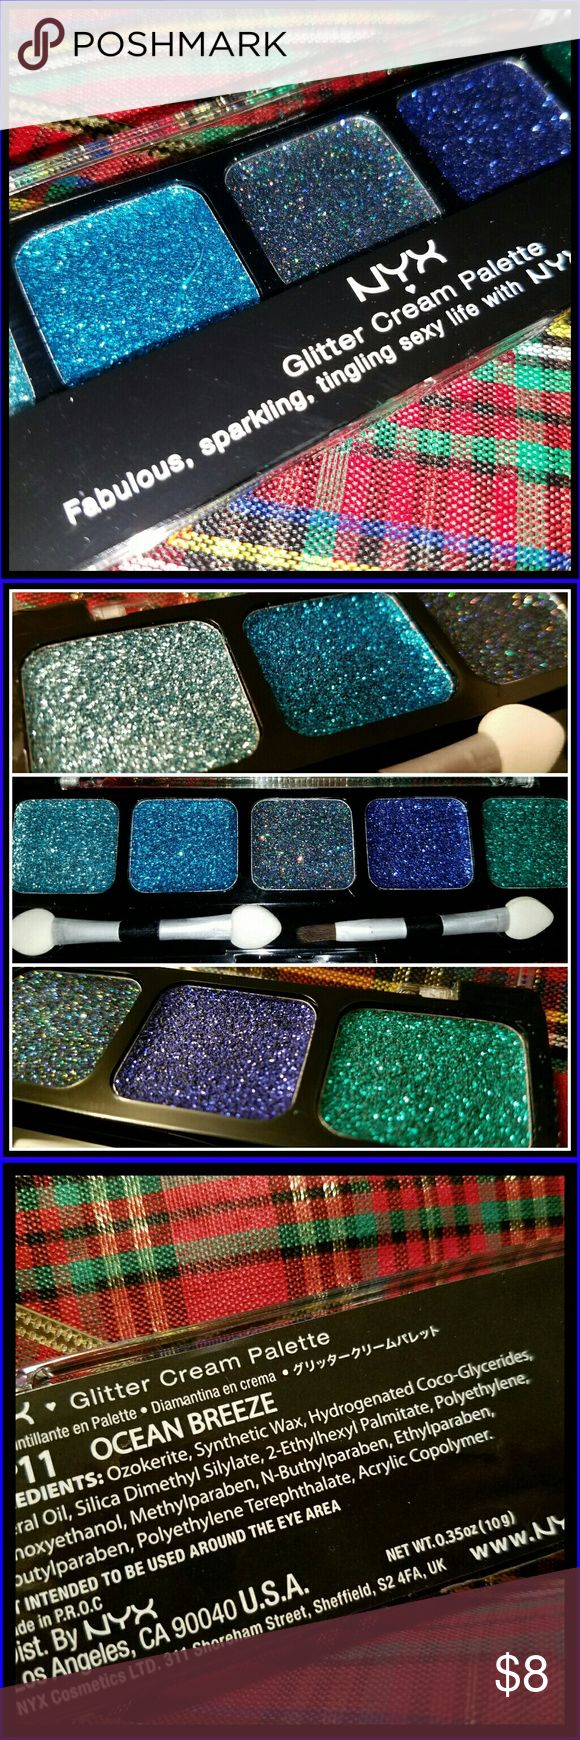 NWOT NYX Glitter Eyeshadow Palette Included is the Ocean Breeze glitter cream eyeshadow palette. Brand new never used. This palette gives you 5 very different glitters to work with. Incorporate this into an everyday look or that special girls night out! NYX Makeup Eyeshadow